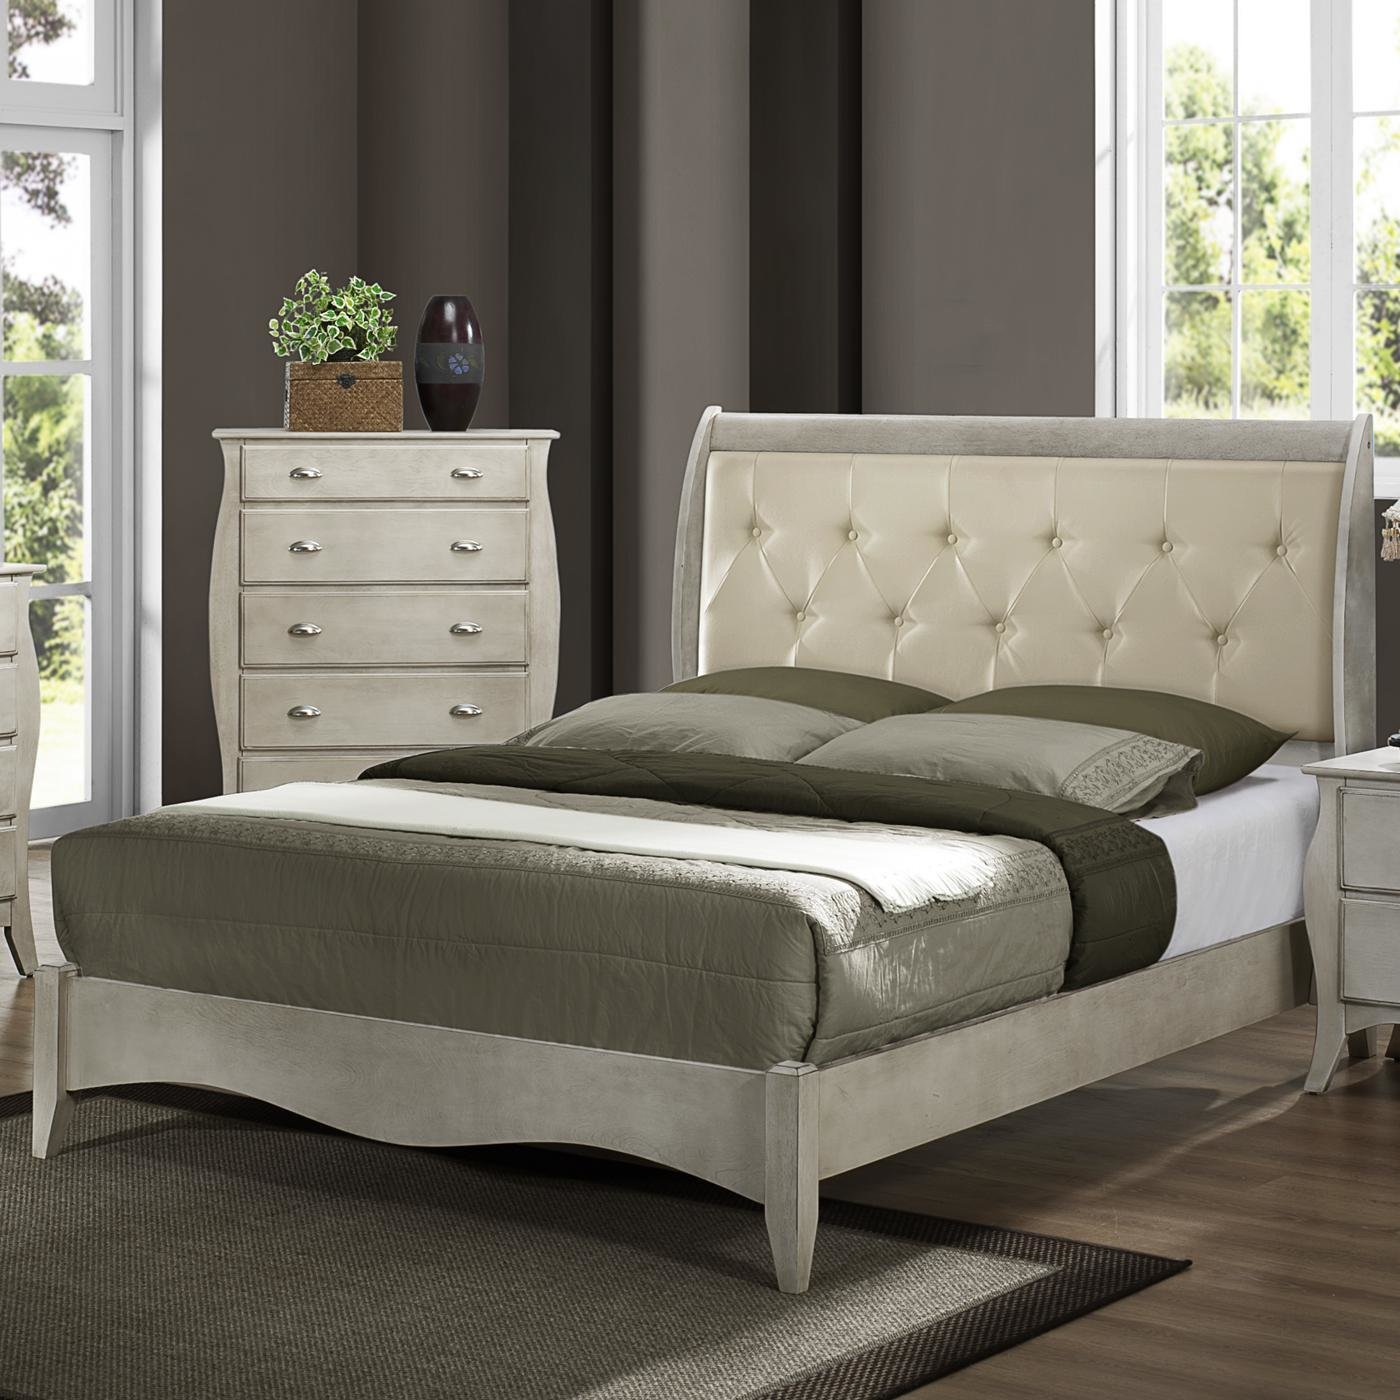 Best Way To Achieve Bed Furniture Stores A Sleek And With Pictures